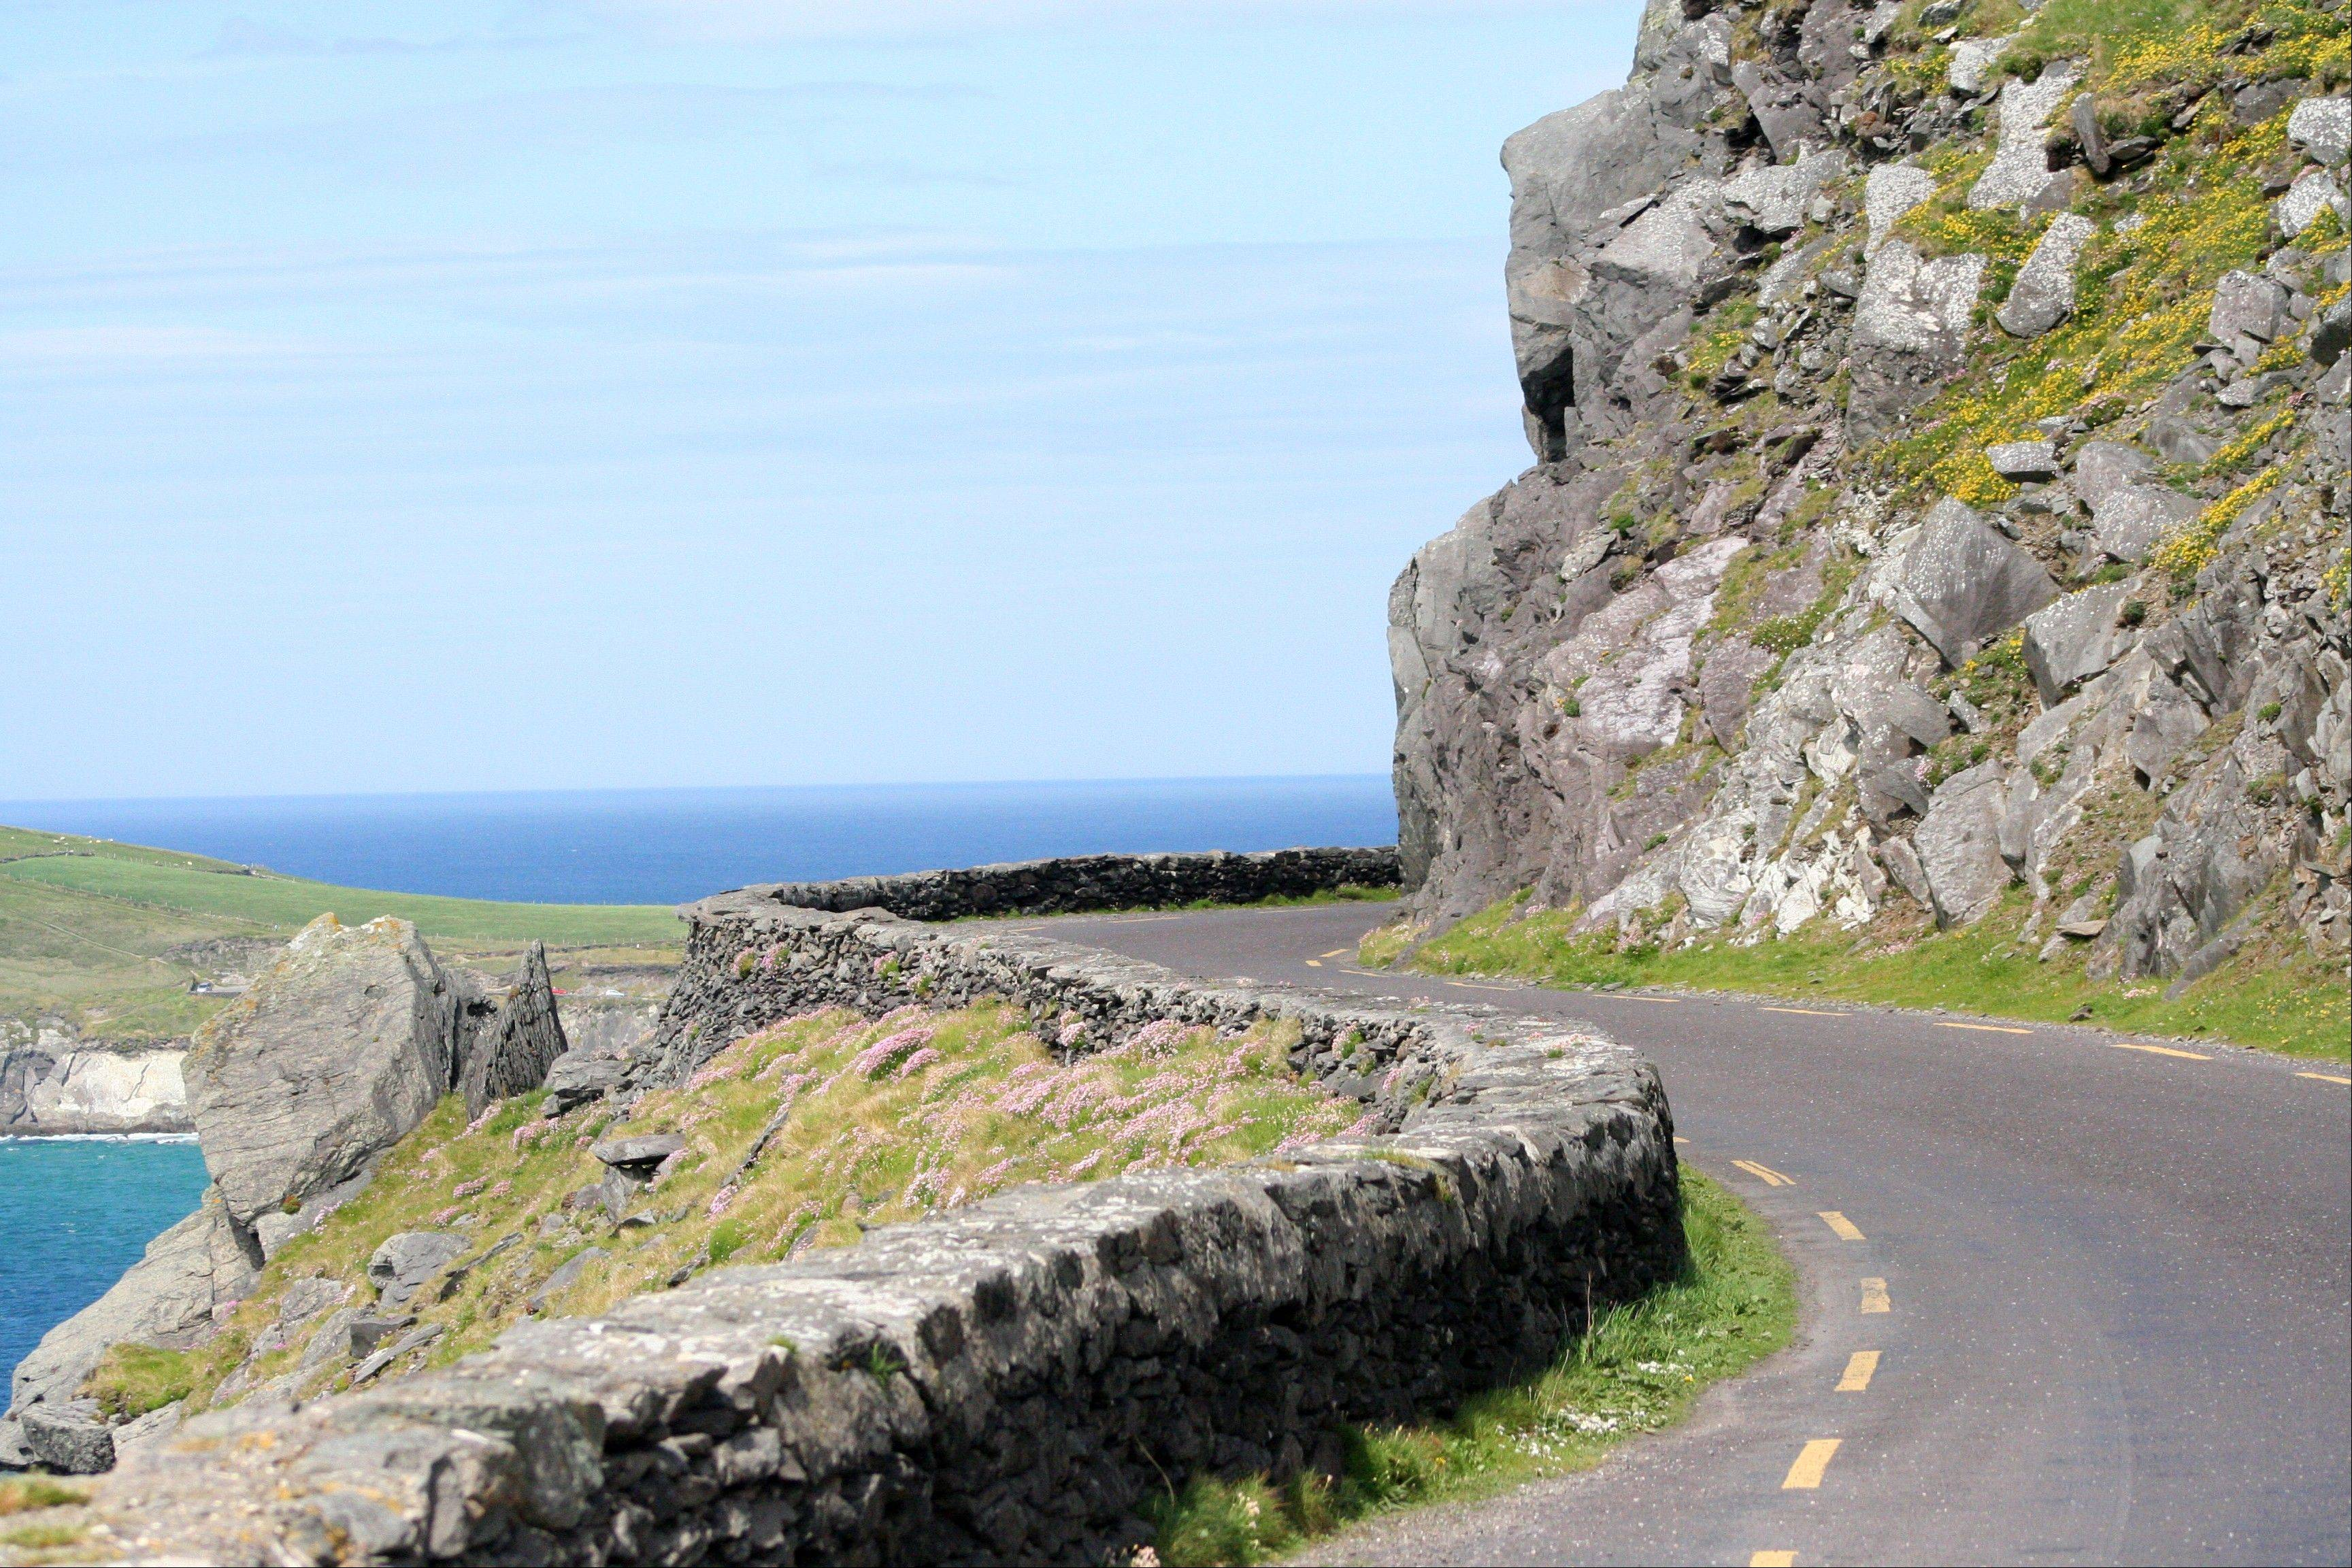 The swerving road at the tip of the Dingle Peninsula in County Kerry.